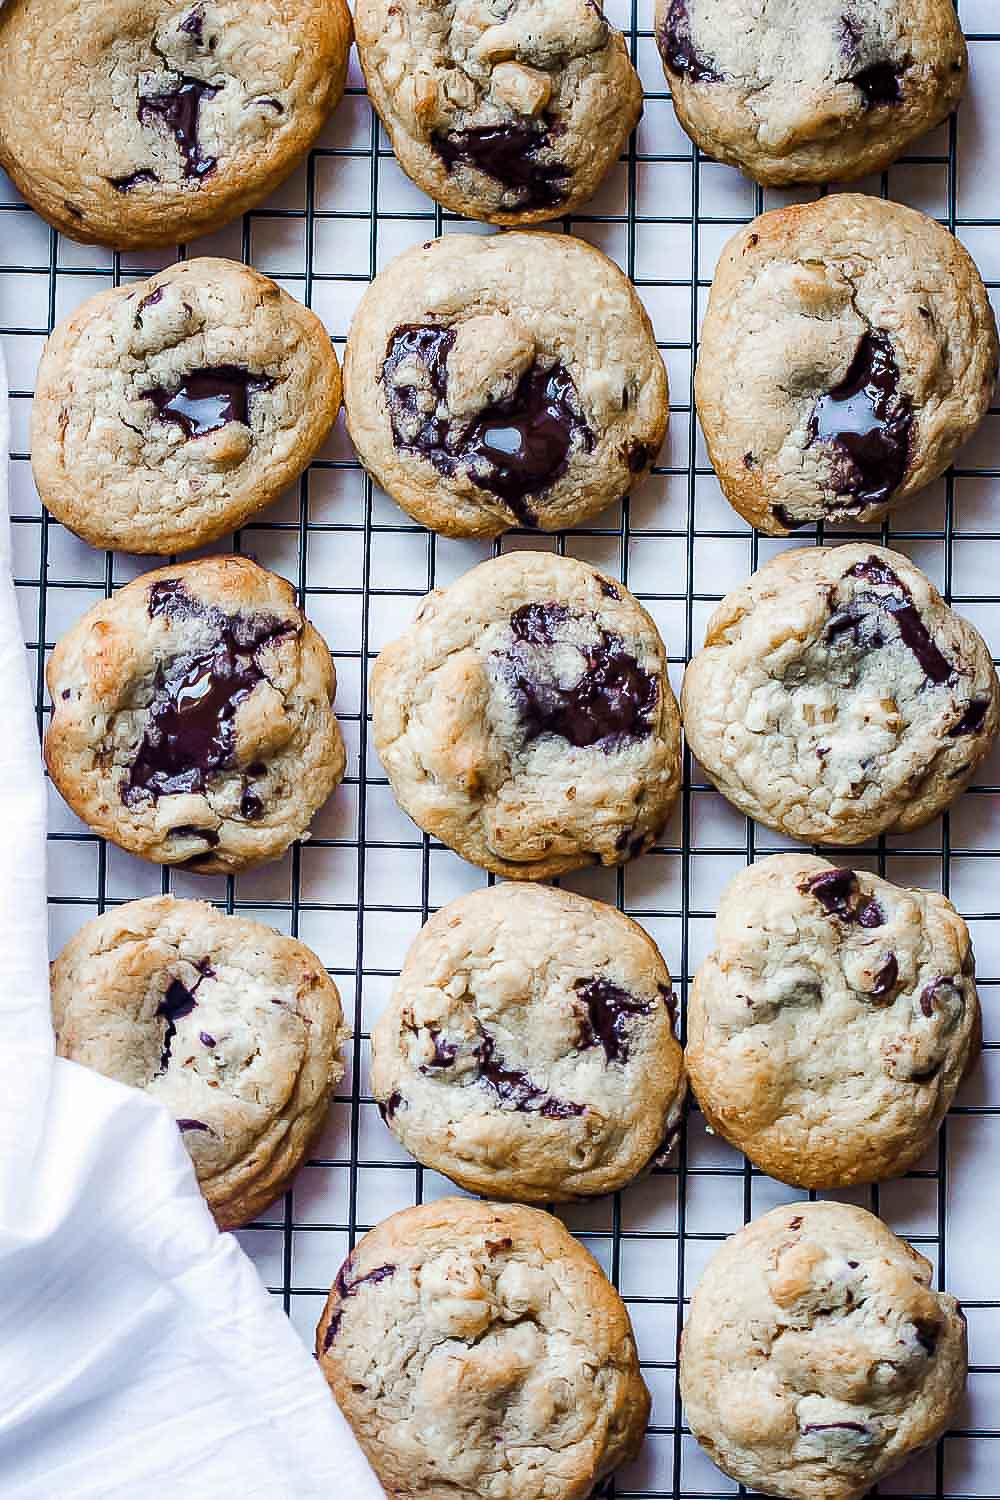 These Easy Chocolate Chip Walnut Cookies are loaded with chocolate and walnuts. This might be a keeper for some of you if you like soft cookies inside and crunchy outside.